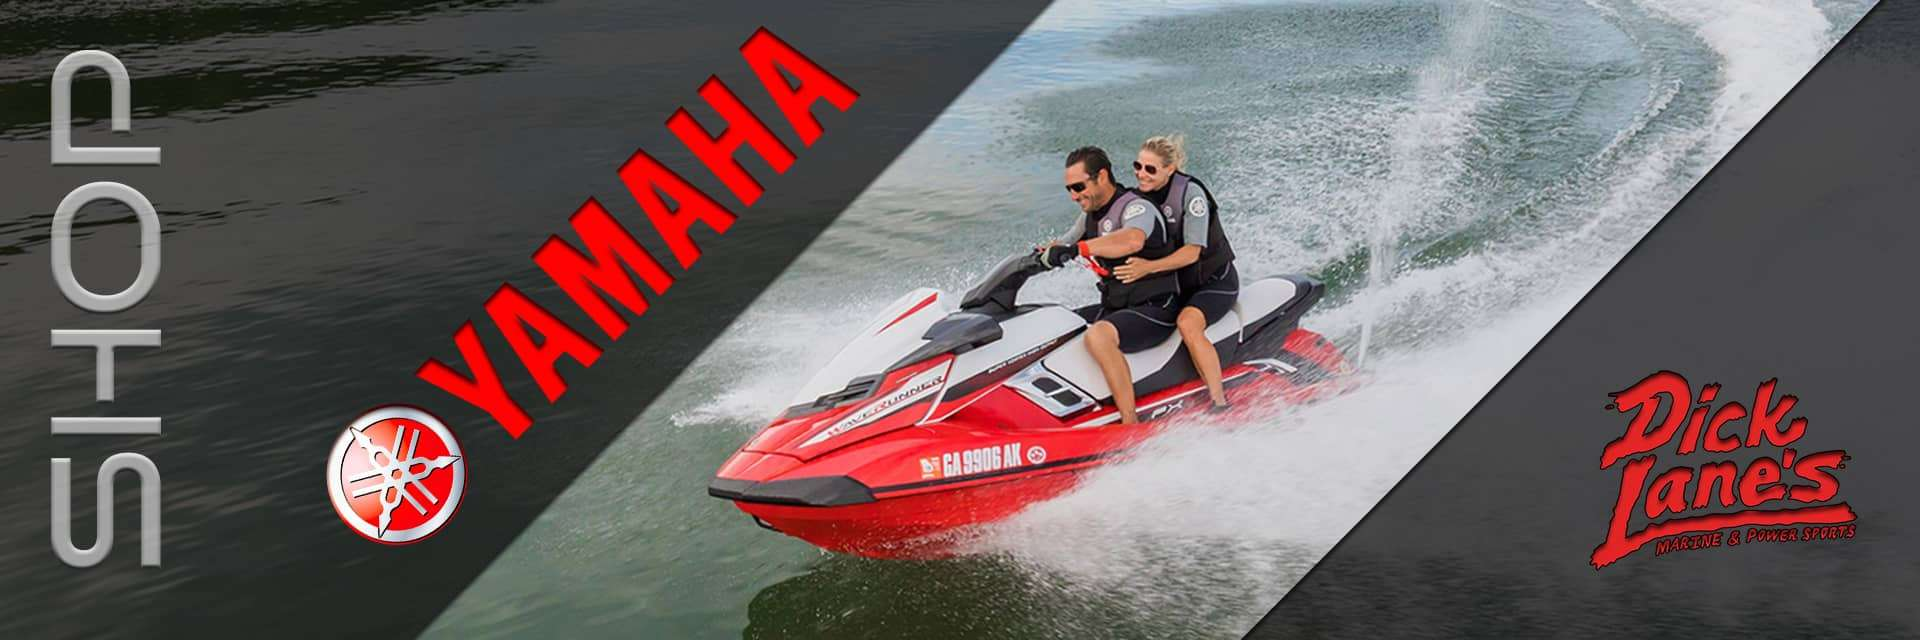 Yamah Waverunners are sold at Dick Lane's Marine and Powersports